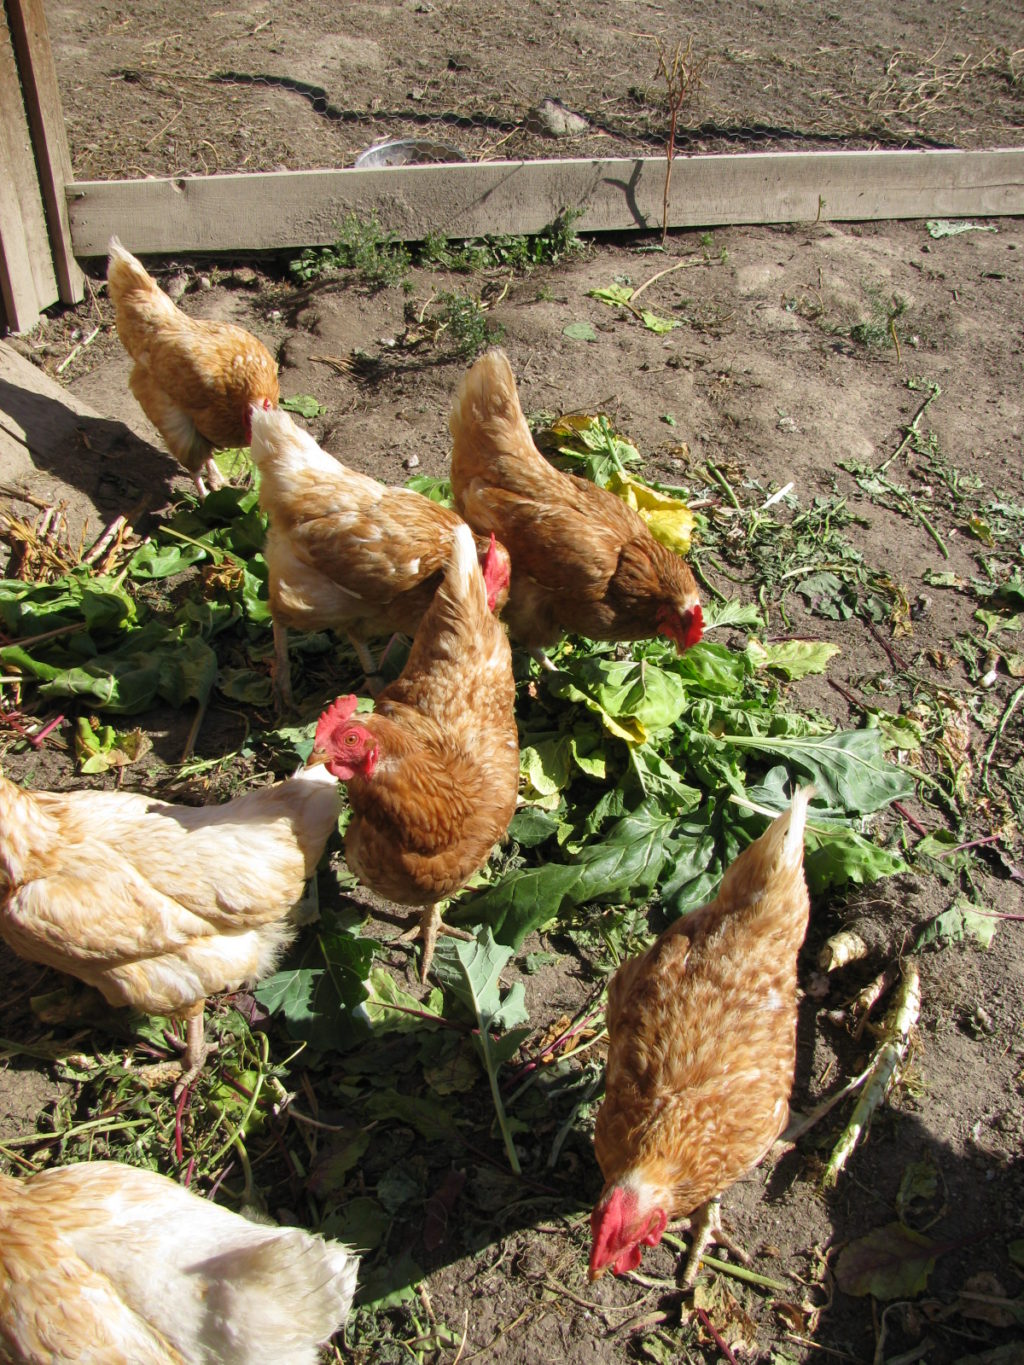 Chickens eating the greens from root vegetables.